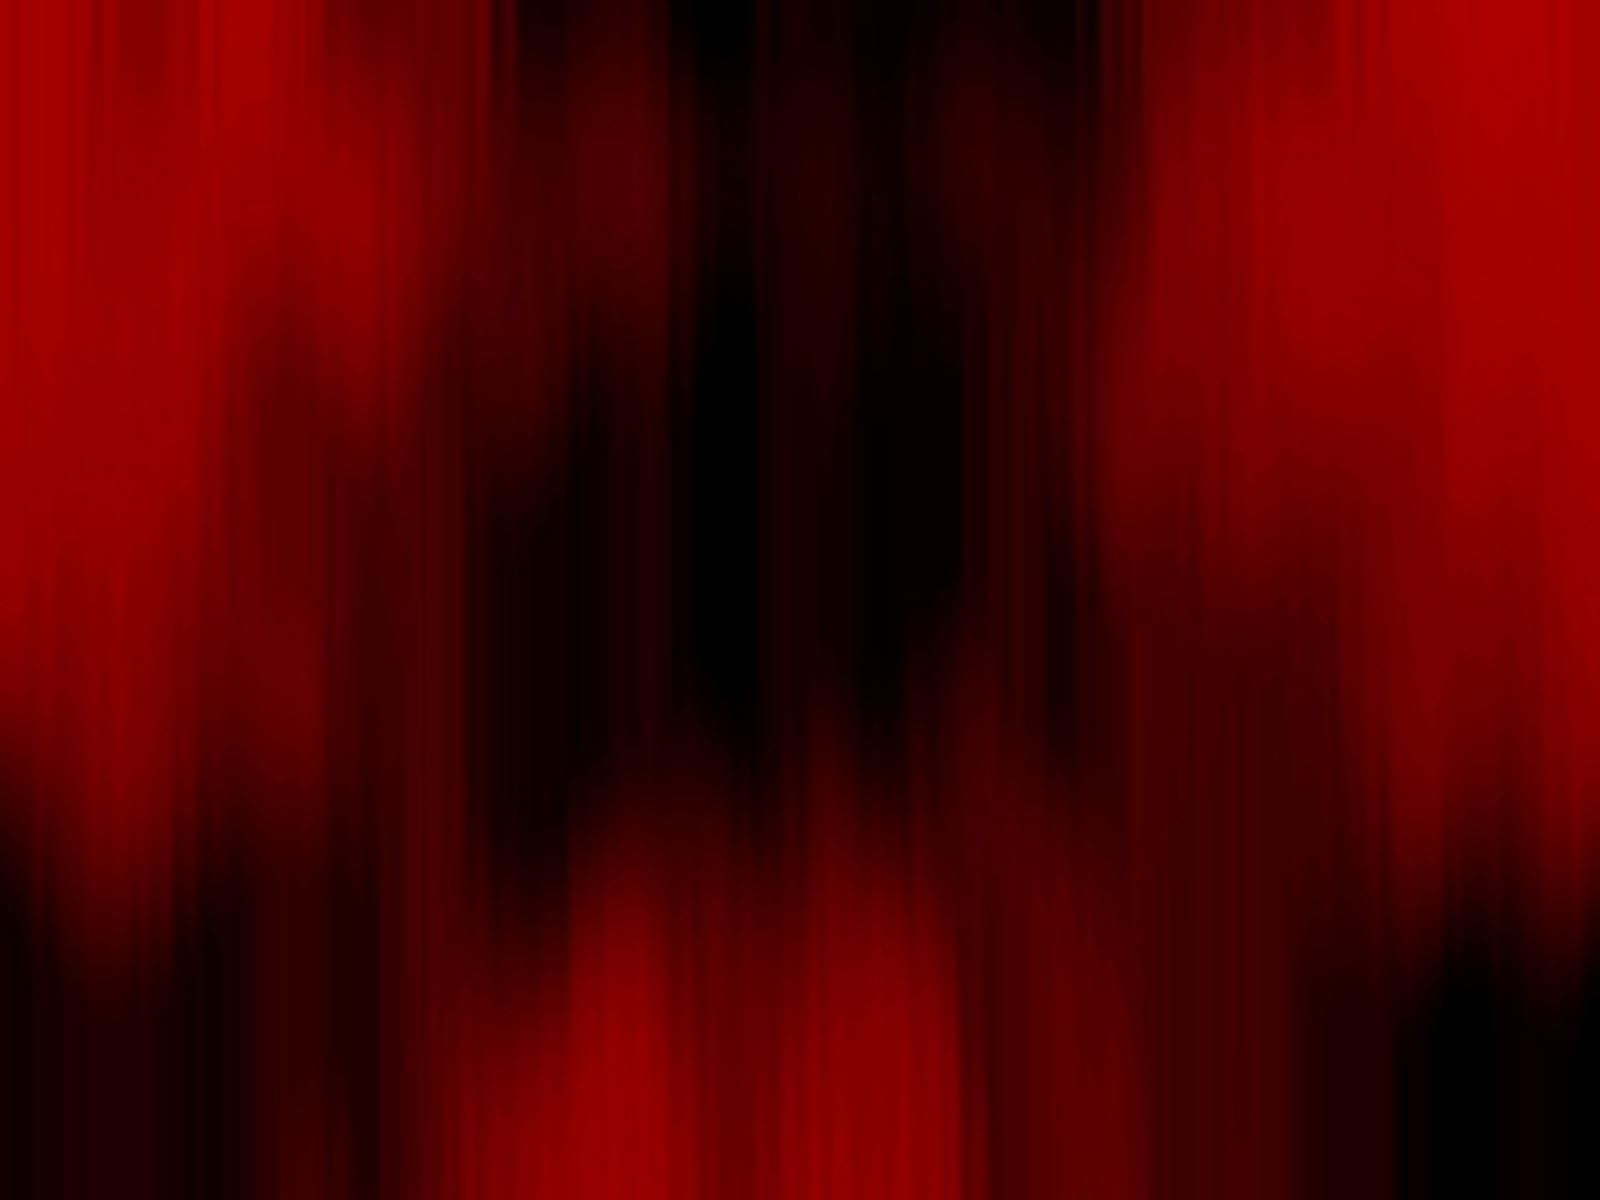 red black background hd - photo #24